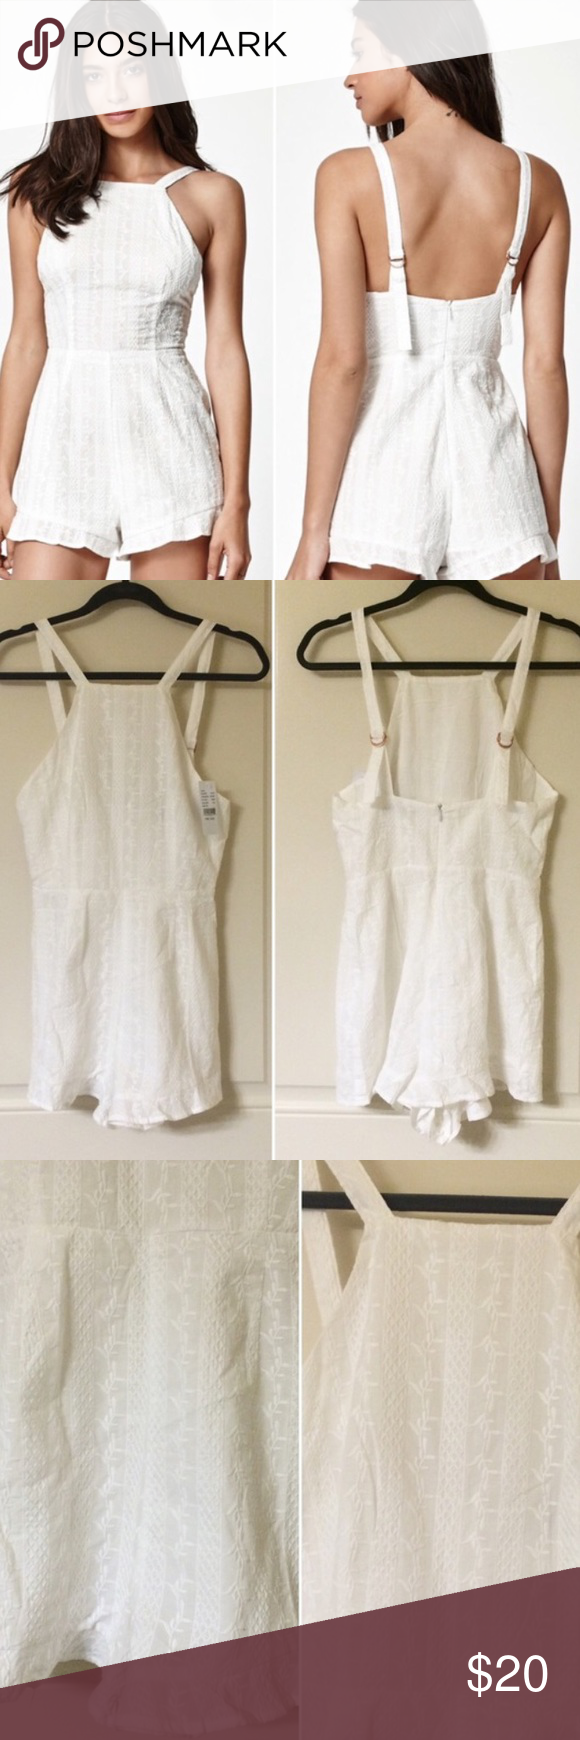 White embroidered romper Bought from another posher, doesn't fit me :( it is perfectly clean and new Kendall & Kylie Dresses